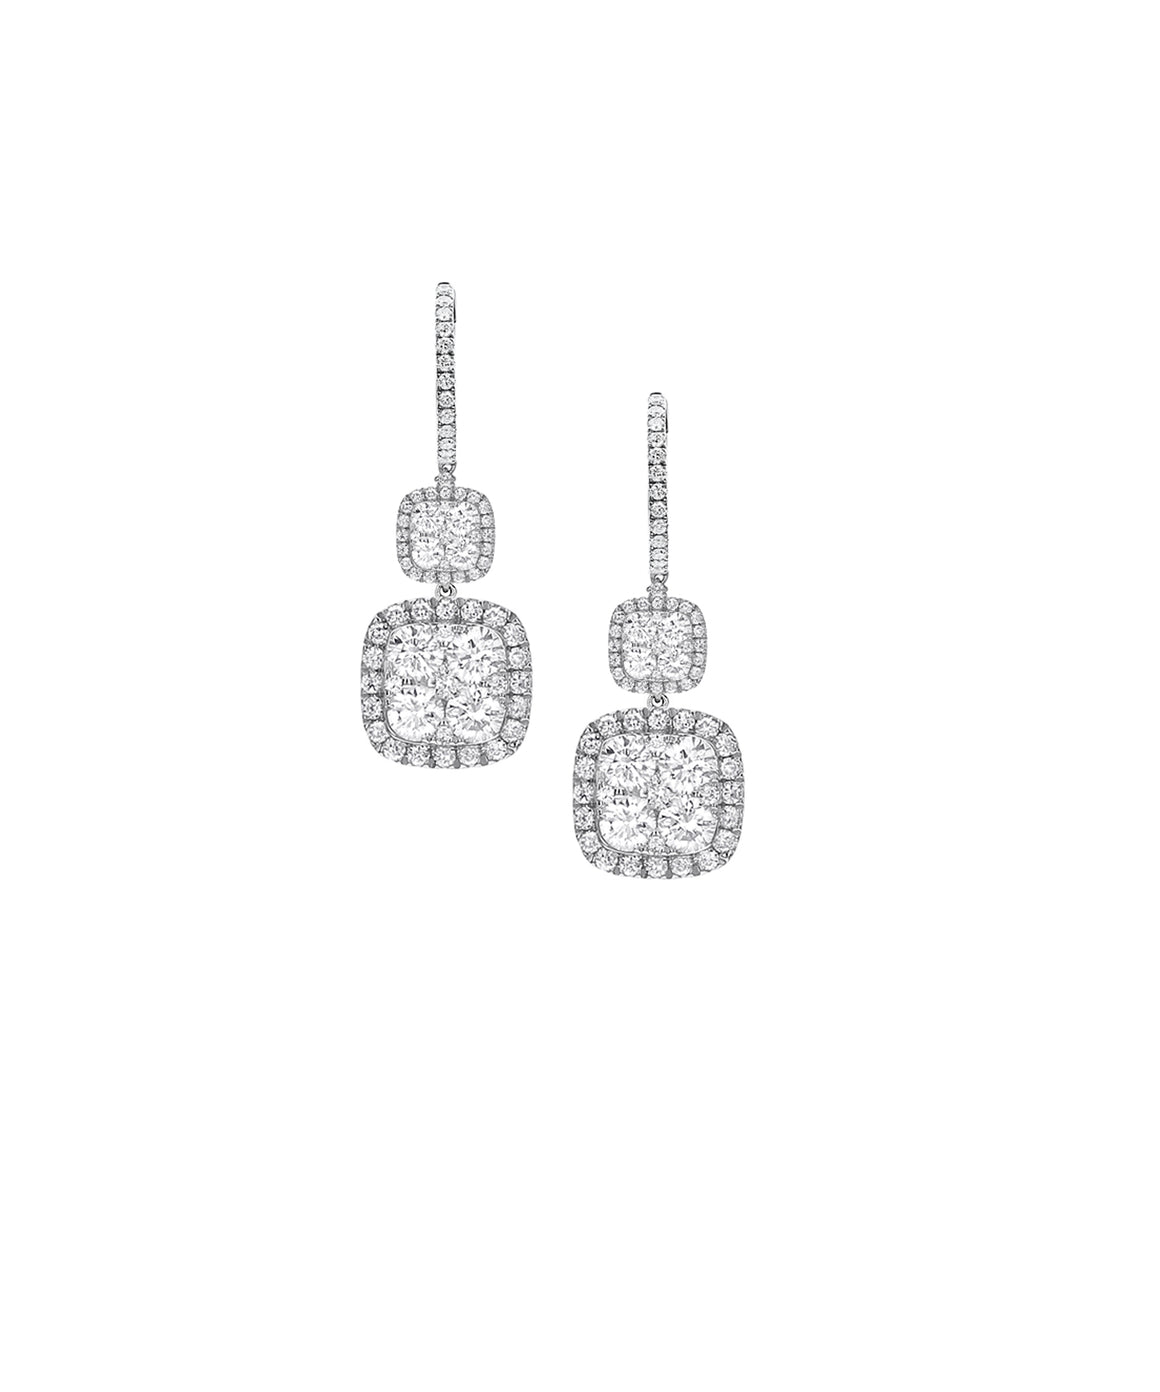 Double Drop Diamond Earrings - Lesley Ann Jewels